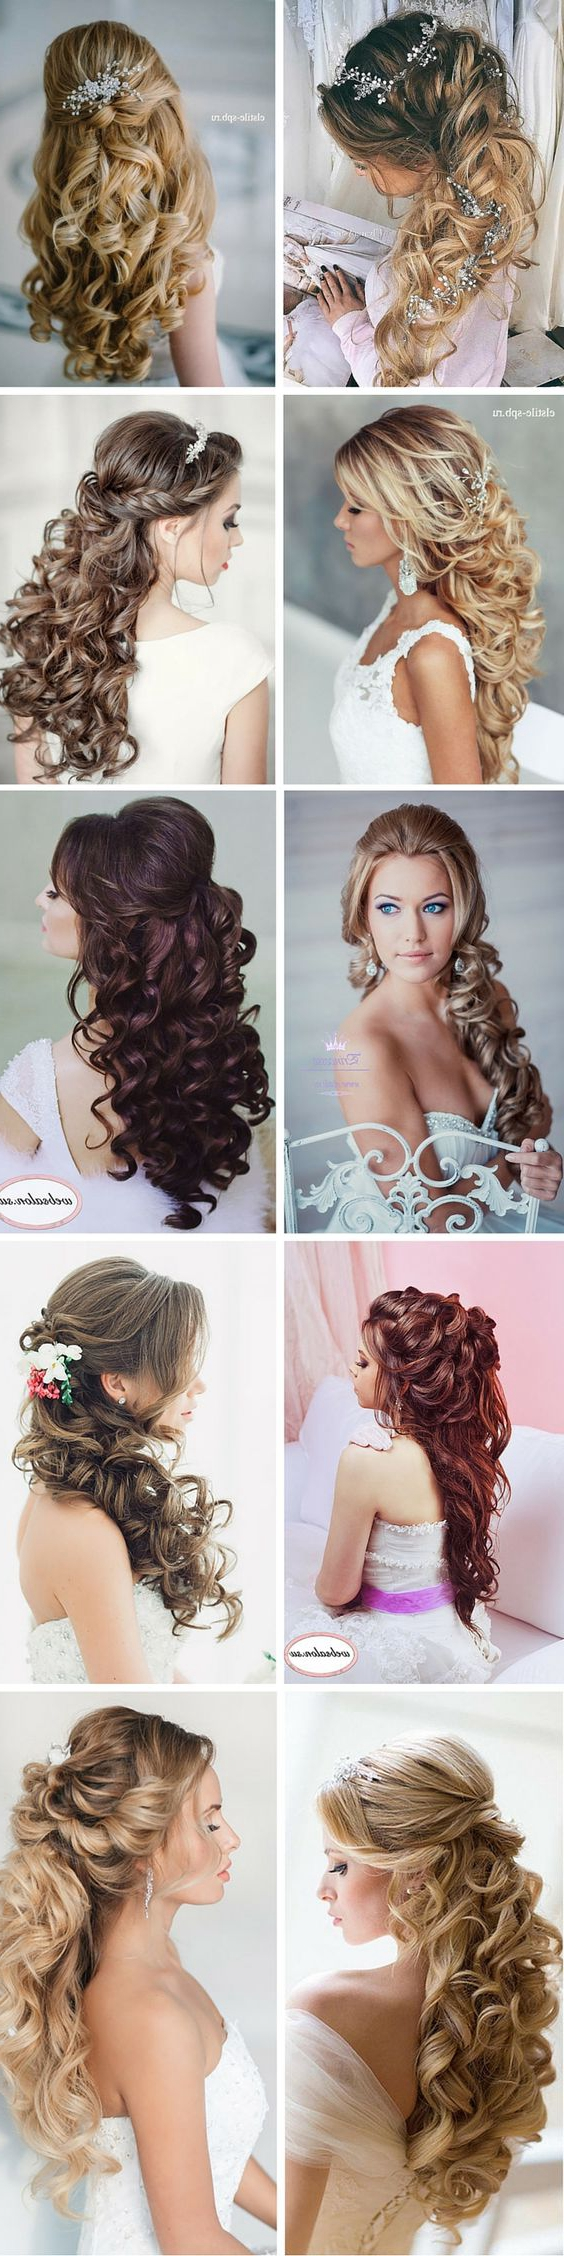 long curly hairstyles for wedding – fashion dresses